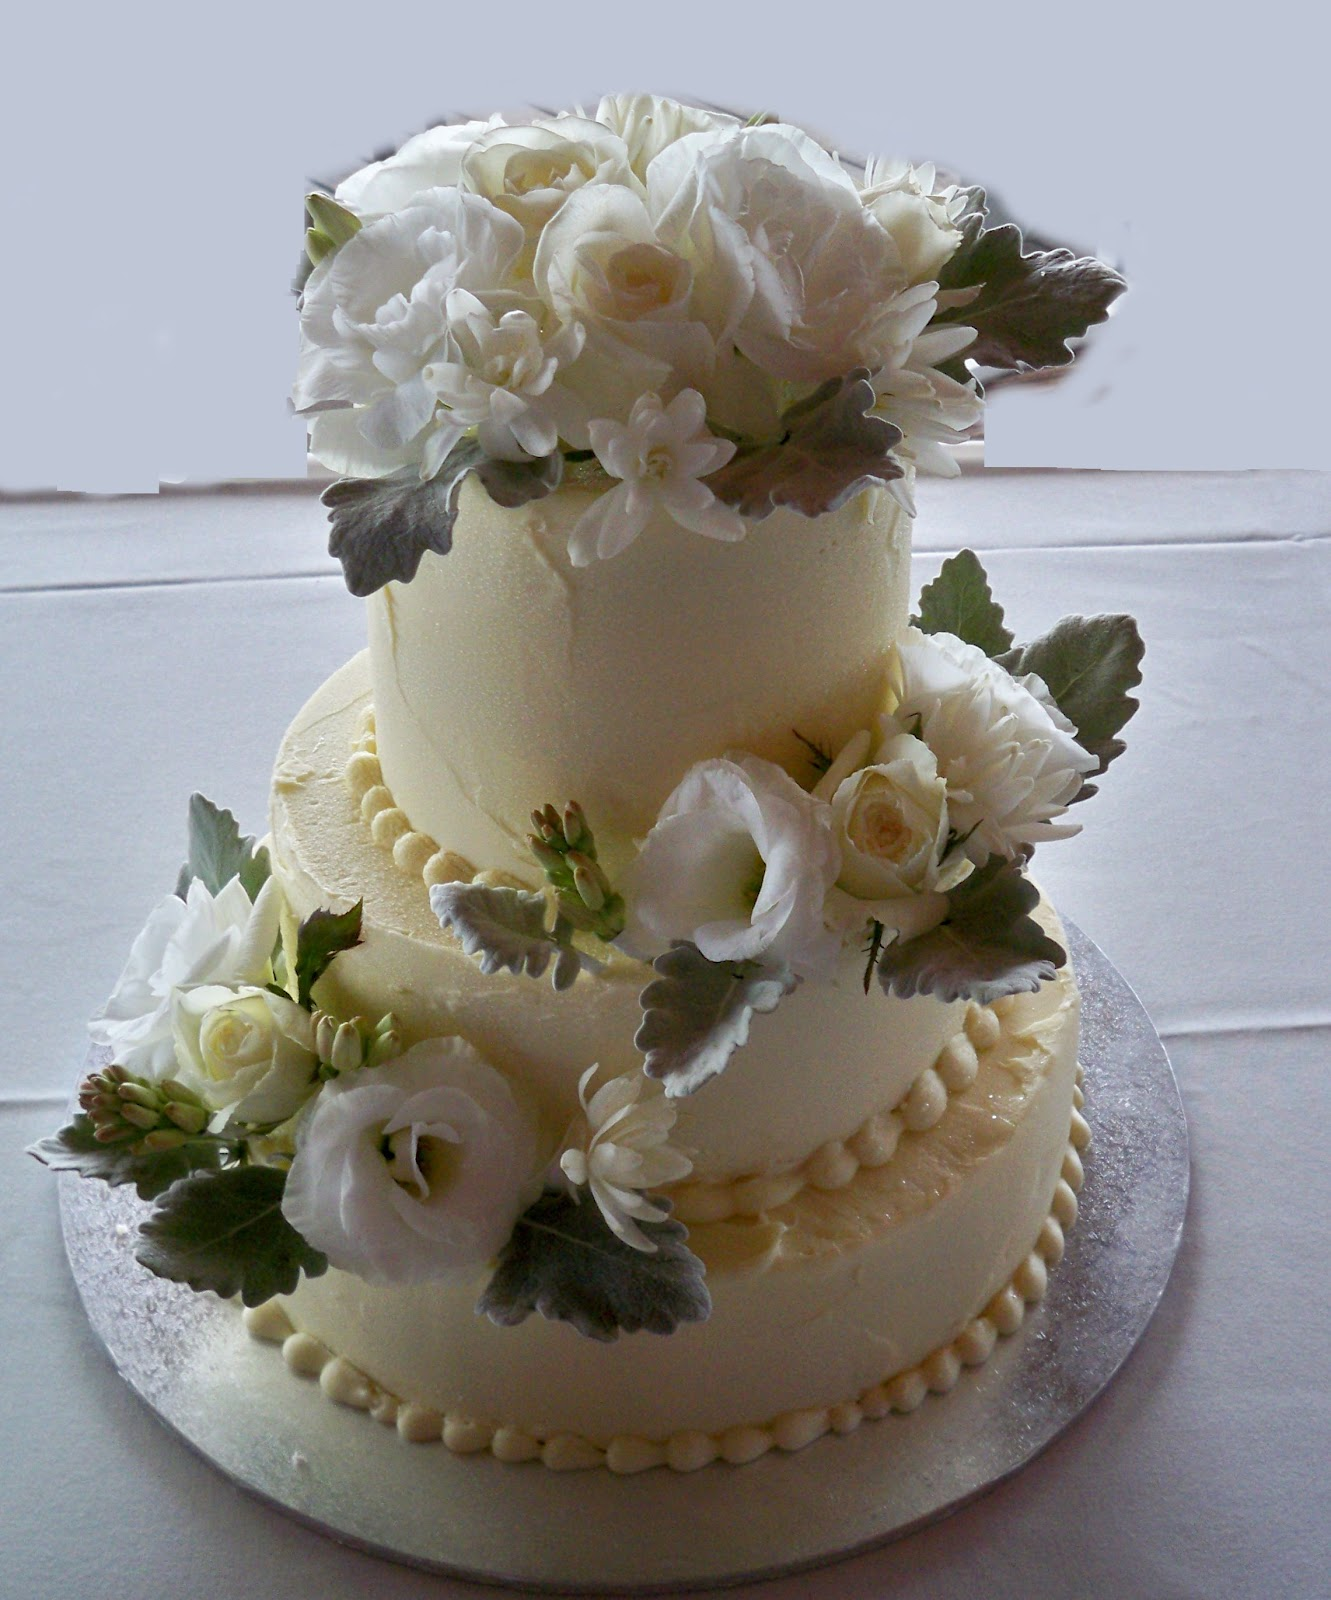 Simple 3 Tier Chocolate Ganache Iced Wedding Cake With Fresh Flowers